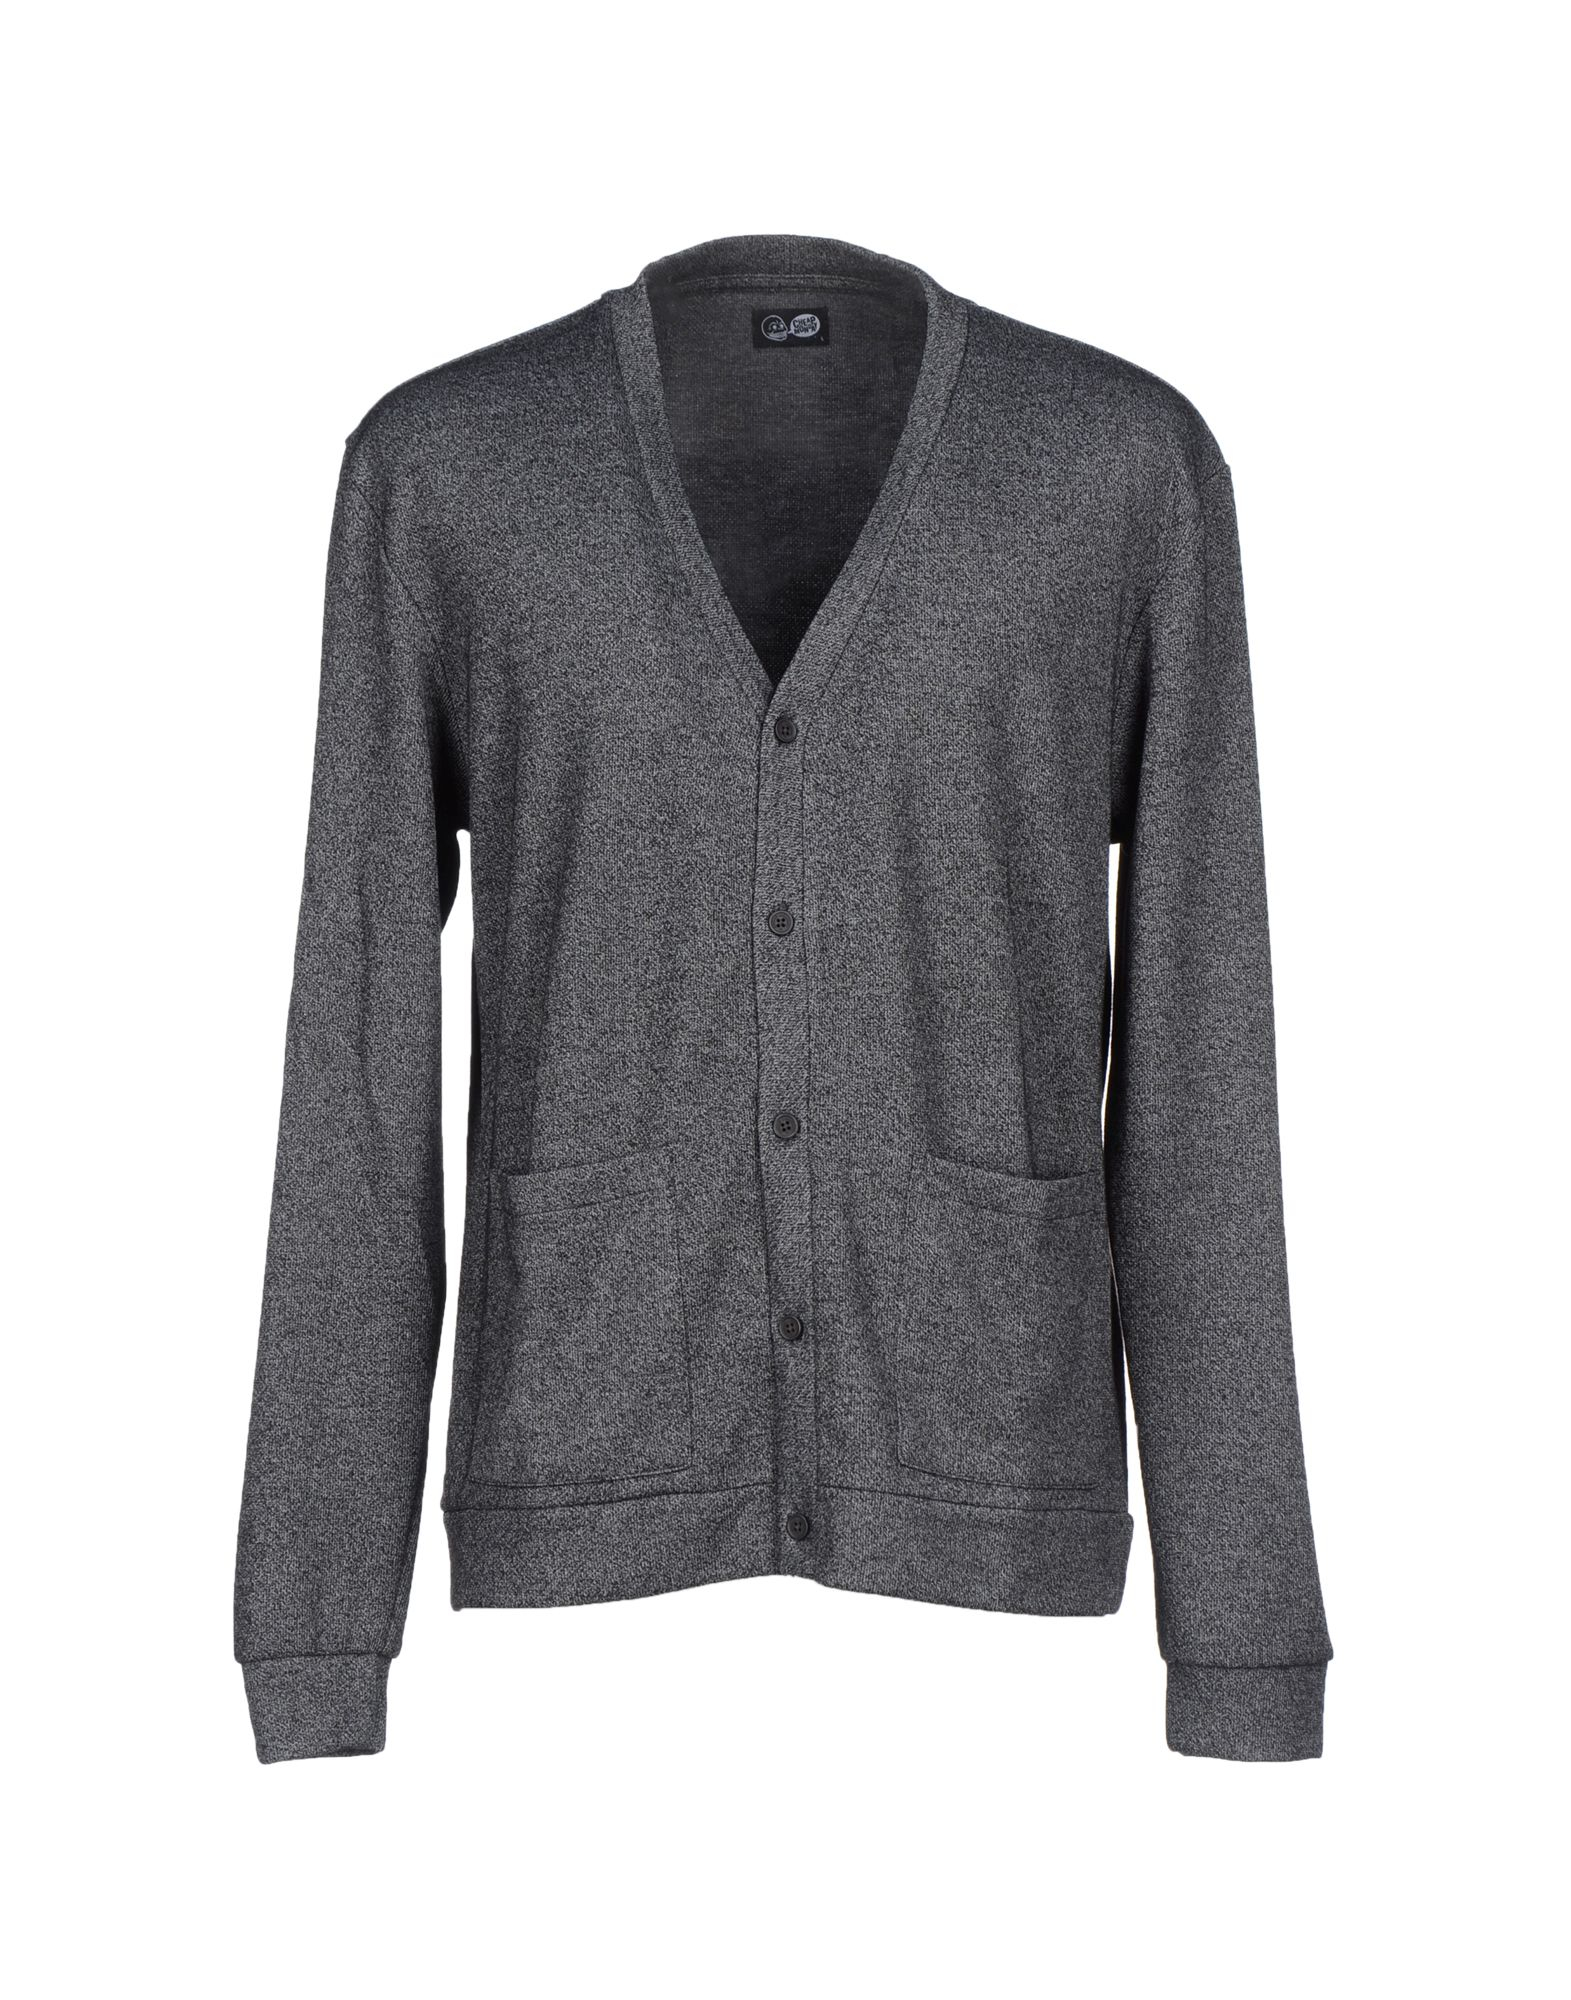 Shop sexy cardigan sweaters for Women cheap prices online, fine warm sexy cardigan sweaters from AMIClubwear that are perfect for going out this winter. Buy cheap cardigan sweaters in black or red for winter, try cheap cardigans in white or pastels for the spring time.